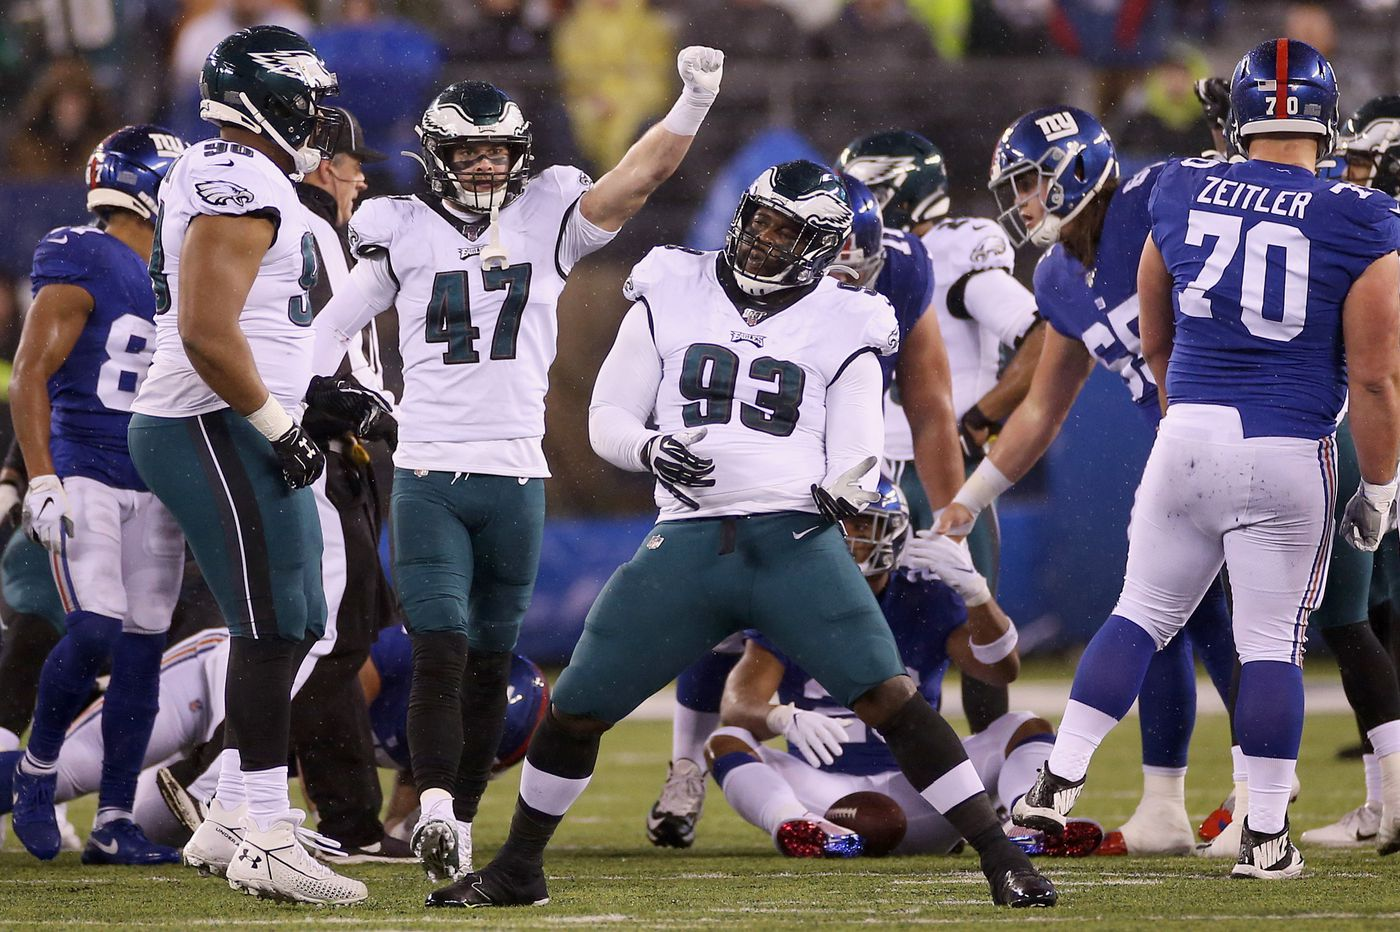 Eagles fans celebrate gutsy Birds' triumph over injuries to beat Giants, win NFC East